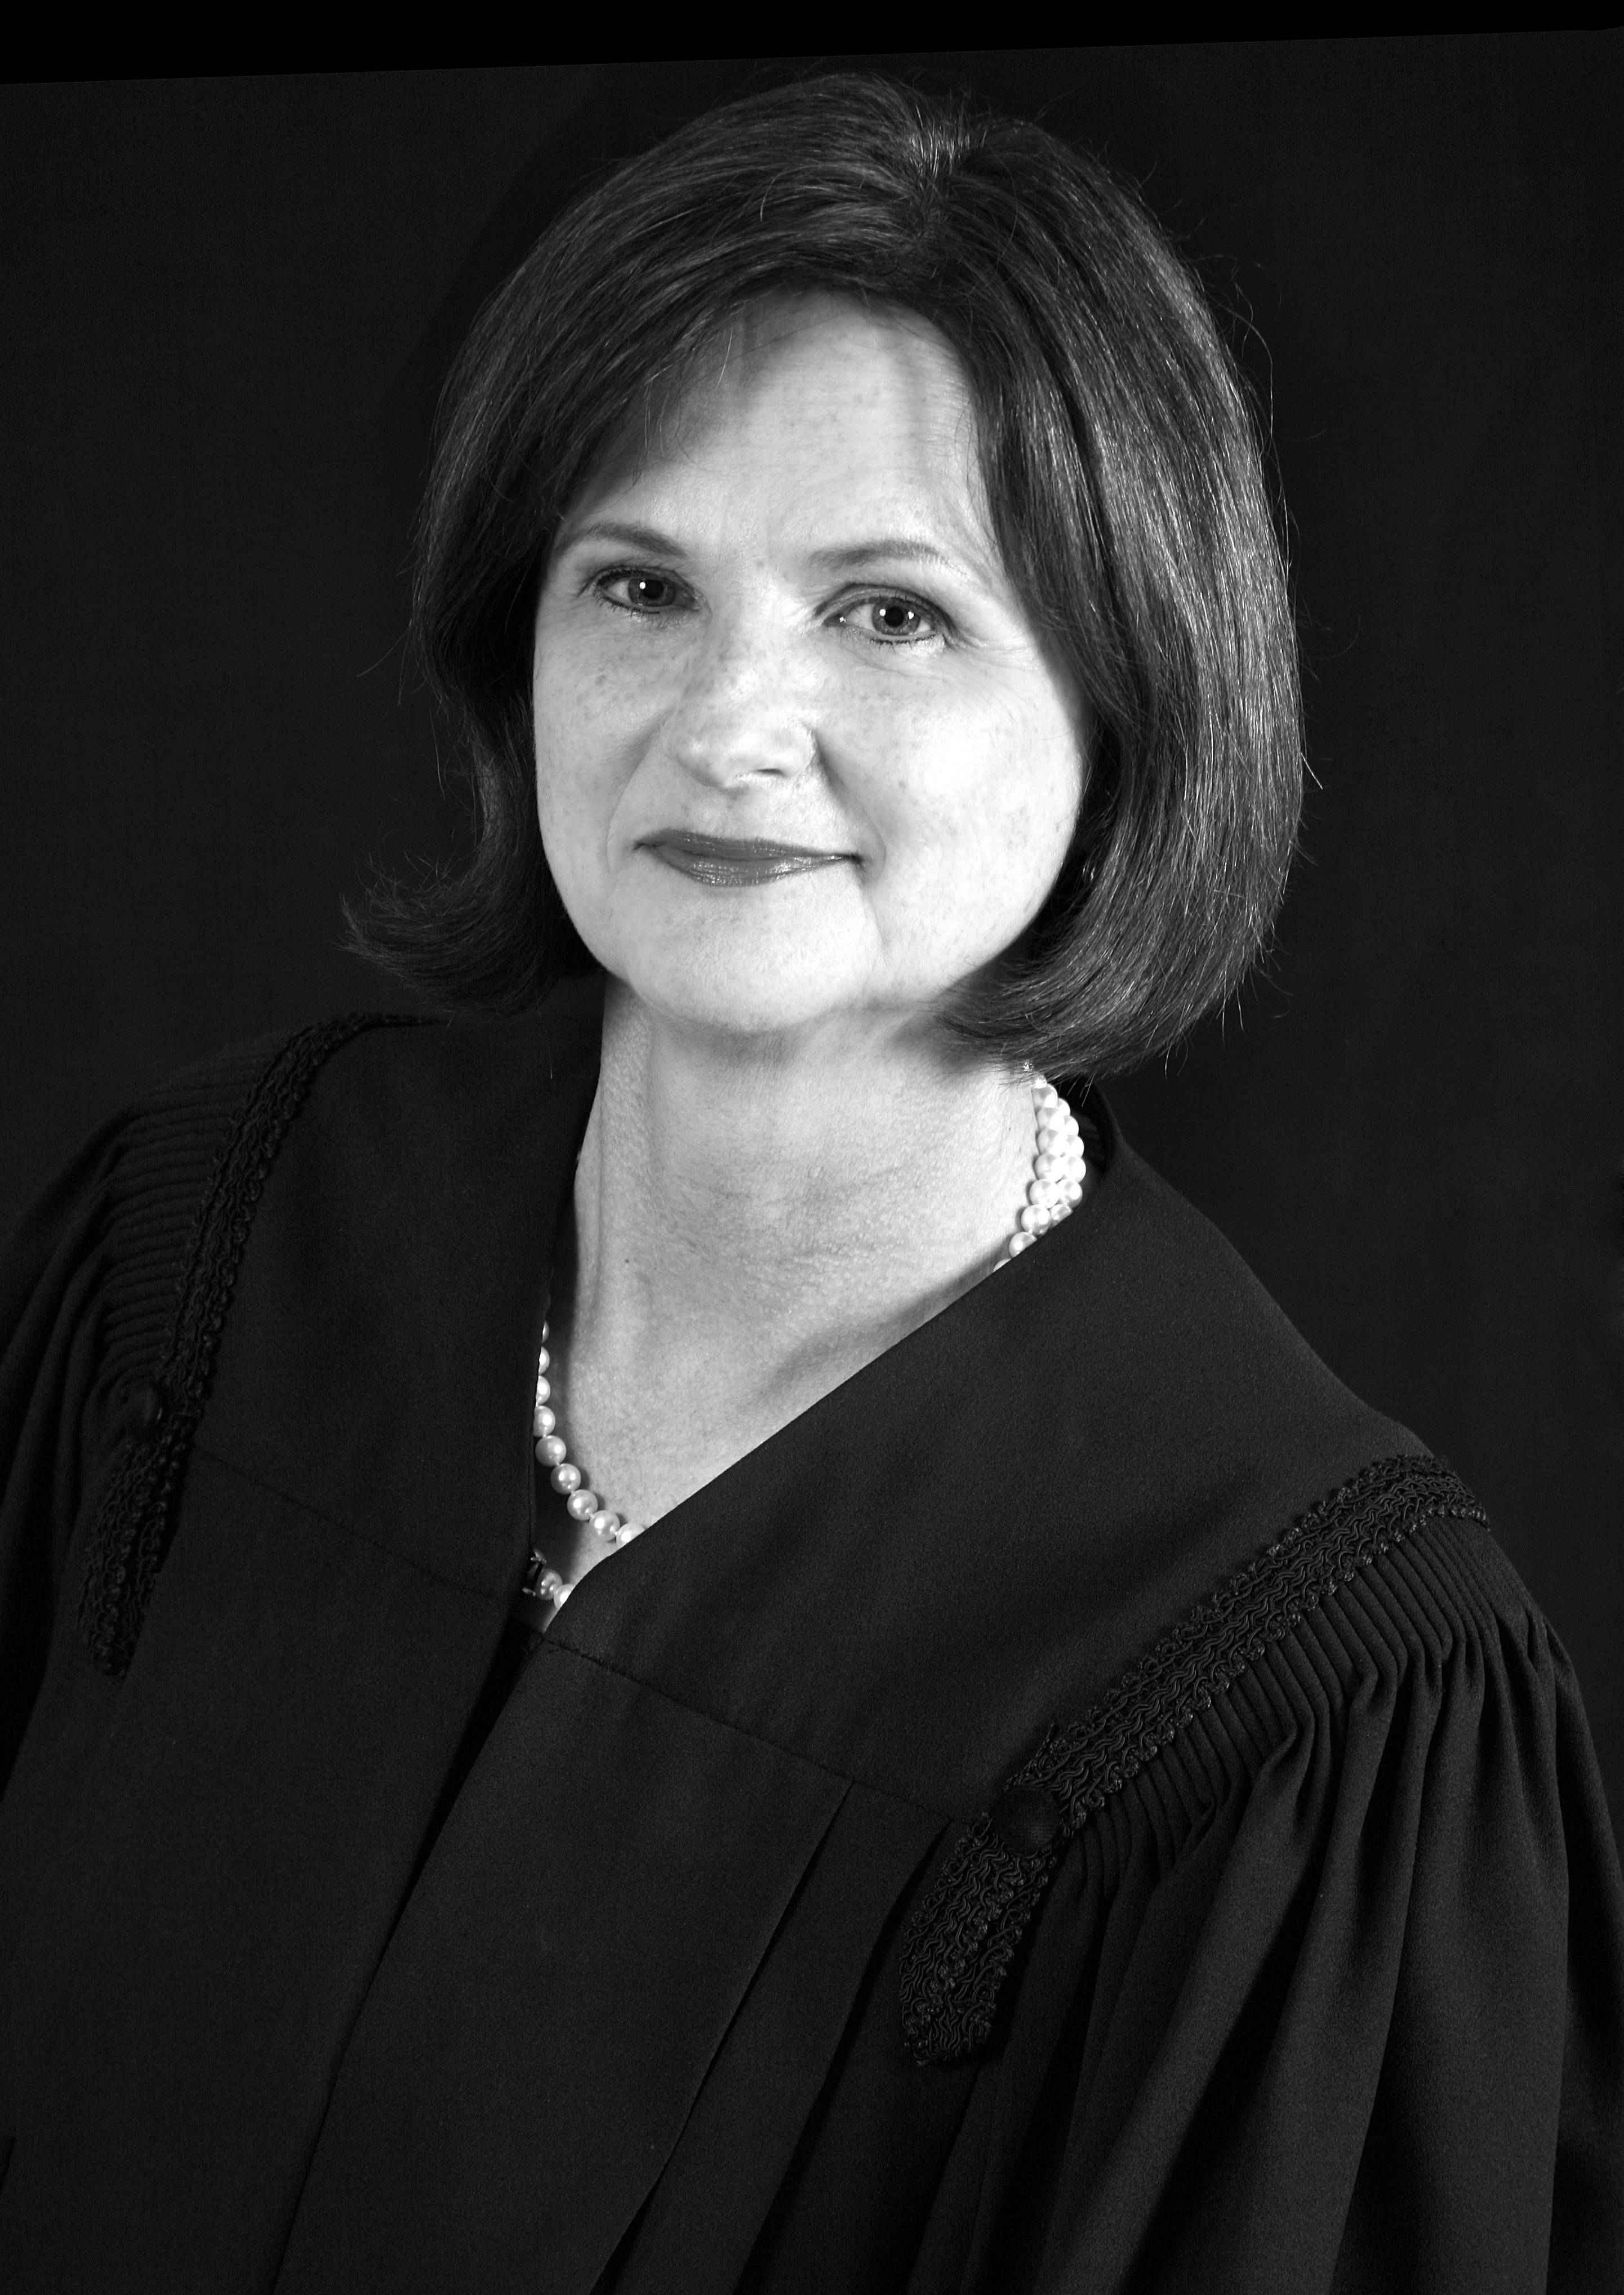 Maureen Connors, running for Appellate Court 1st District (Theis)